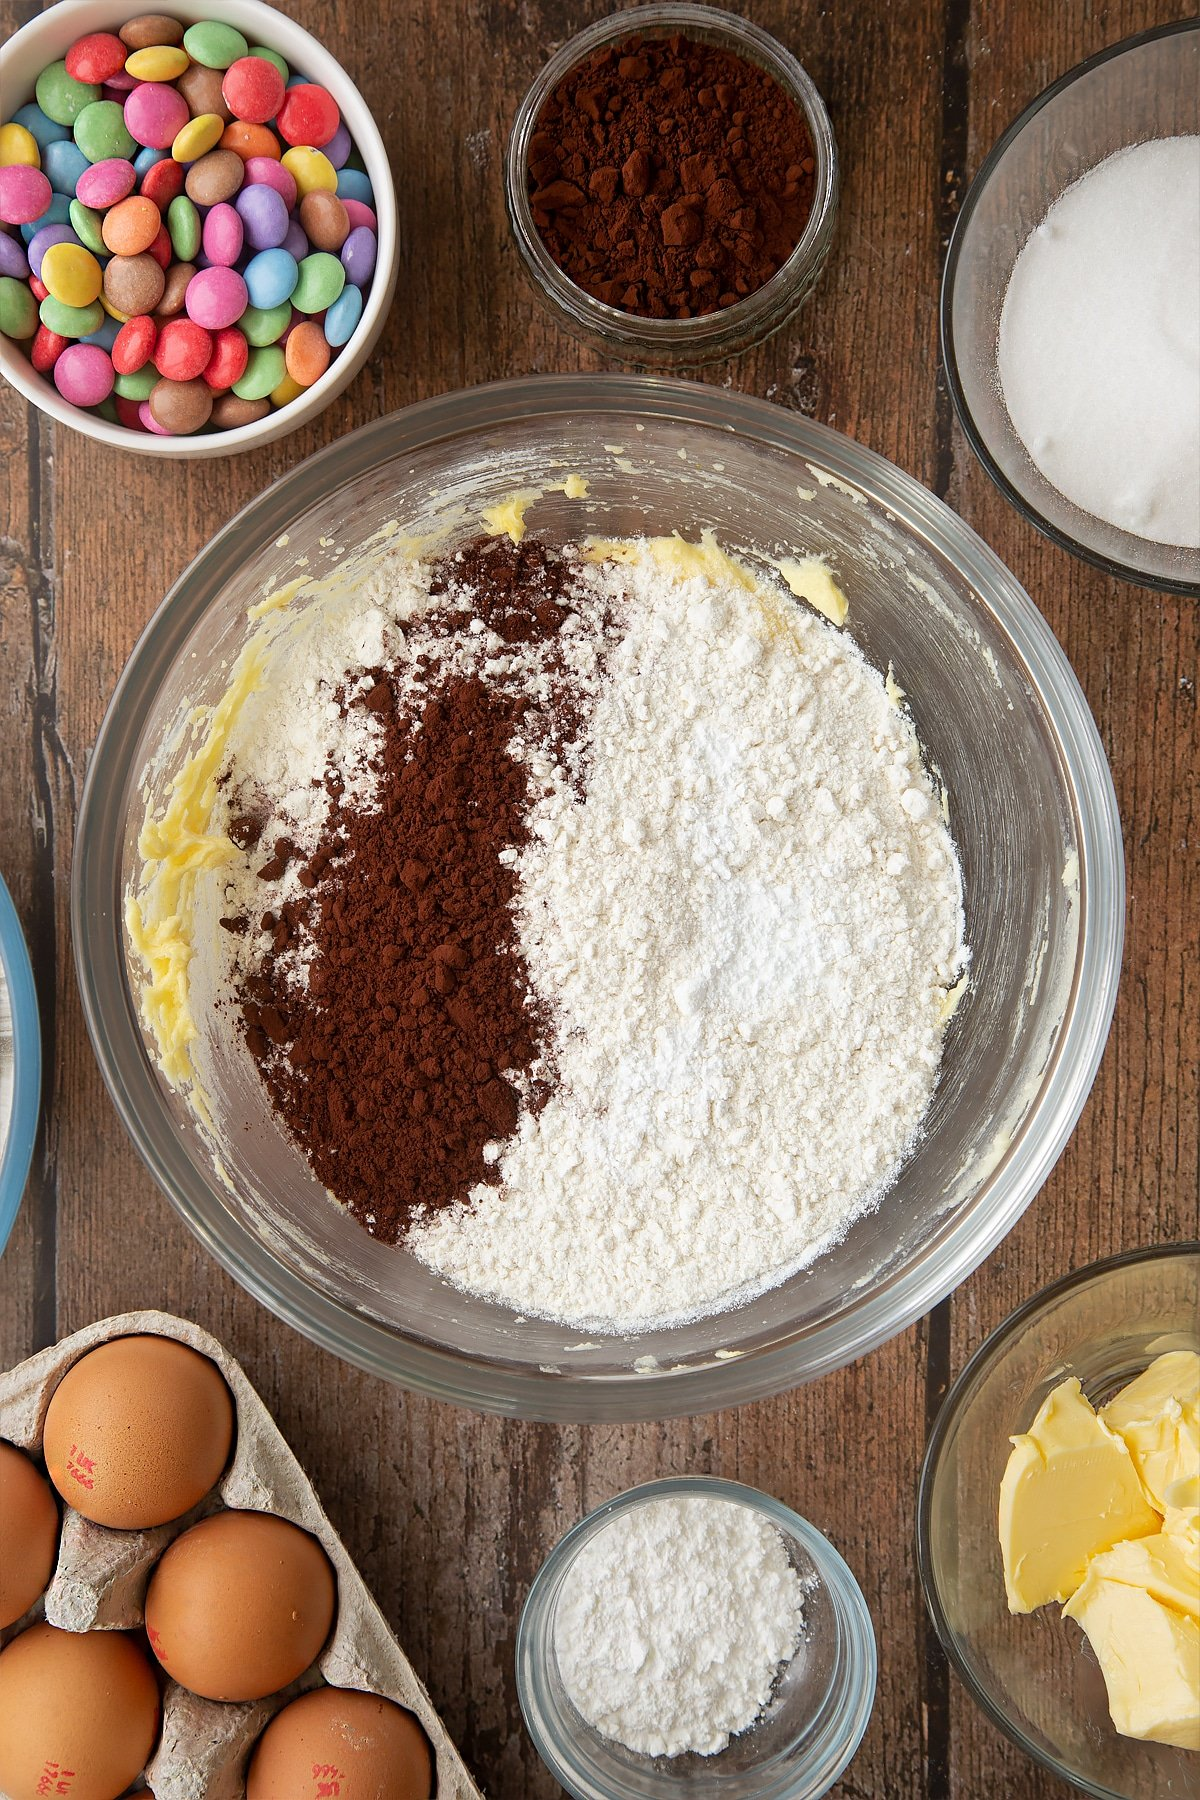 Beaten sugar, eggs and butter, topped with flour, cocoa and baking powder in a glass mixing bowl. Ingredients to make the Smartie cookie recipe surround the bowl.